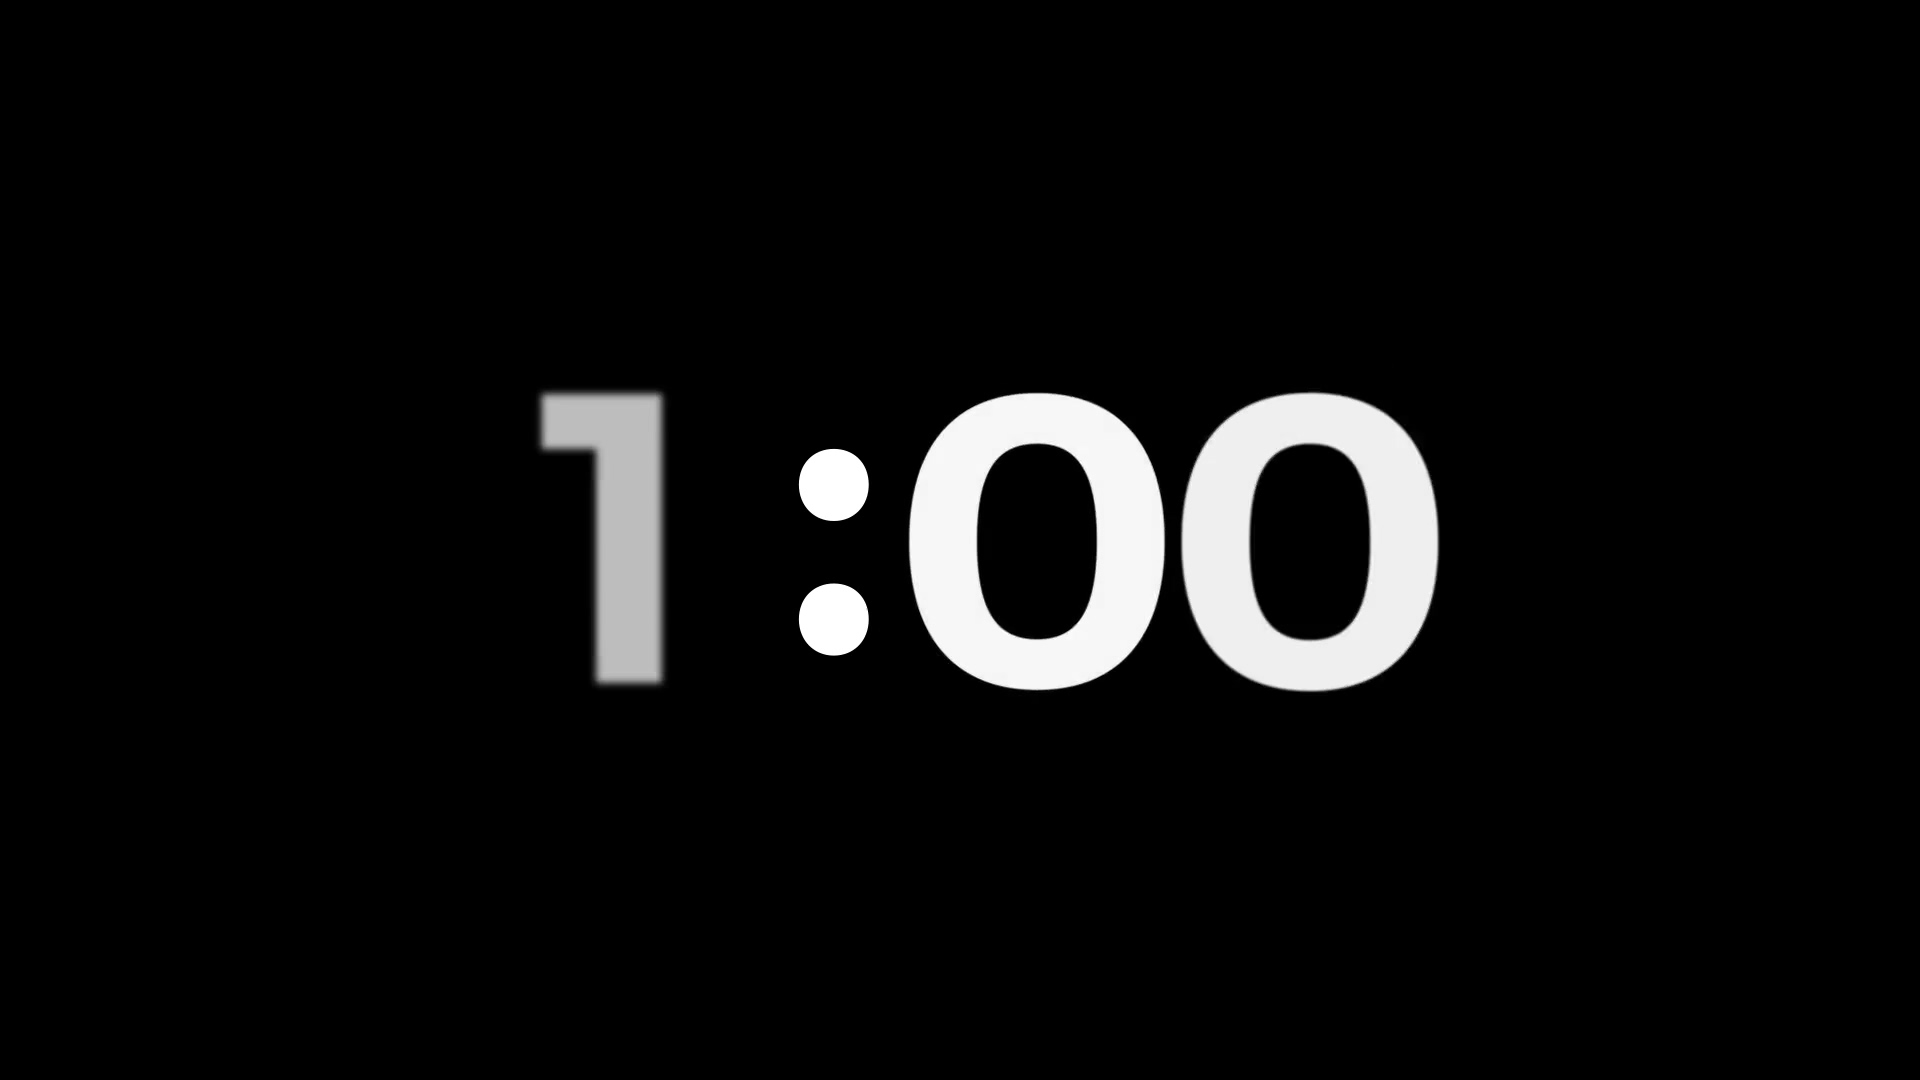 minute-timer